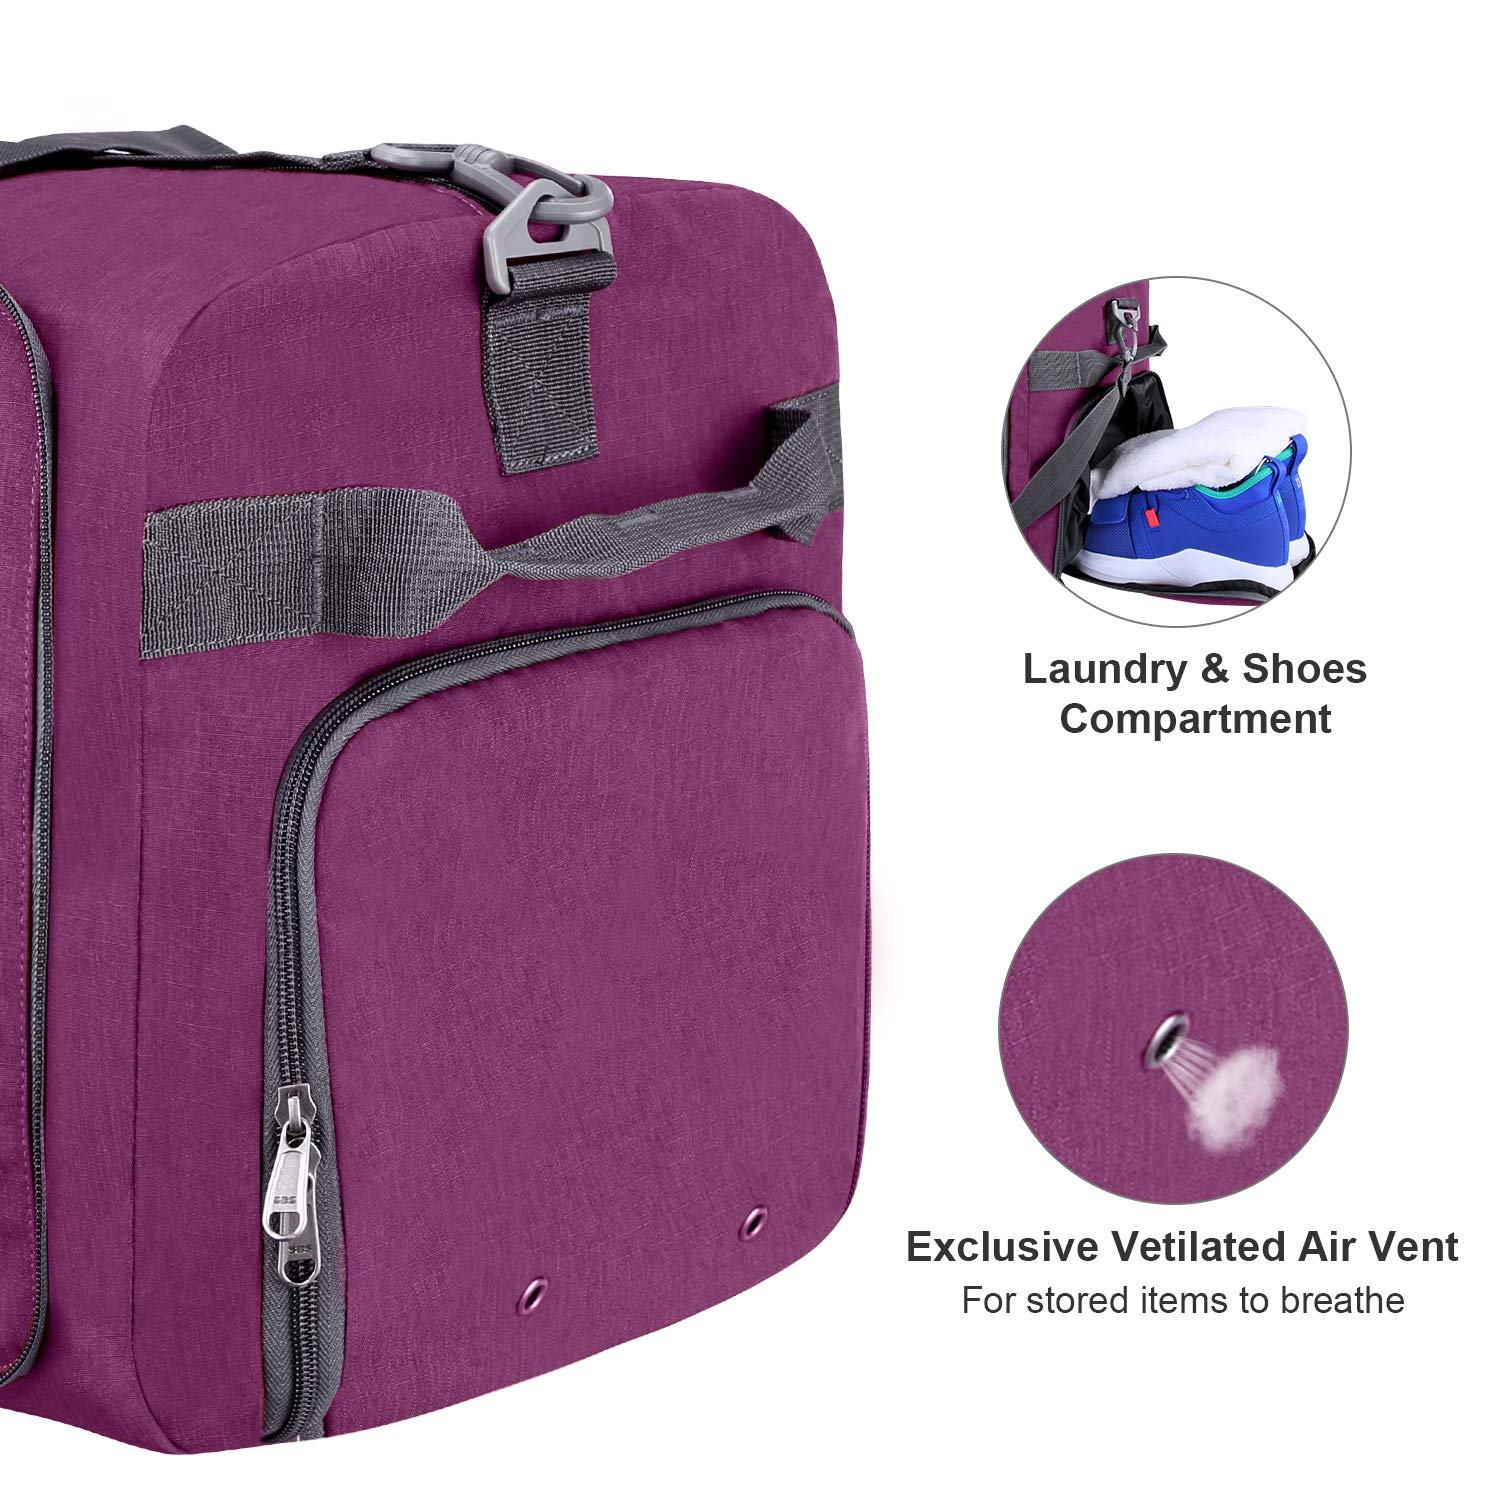 Foldable Weekender Bag with Shoes Compartment for Men Women Water-proof /& Tear Resistant Canway 65L Travel Duffel Bag Lavender Purple, 65L